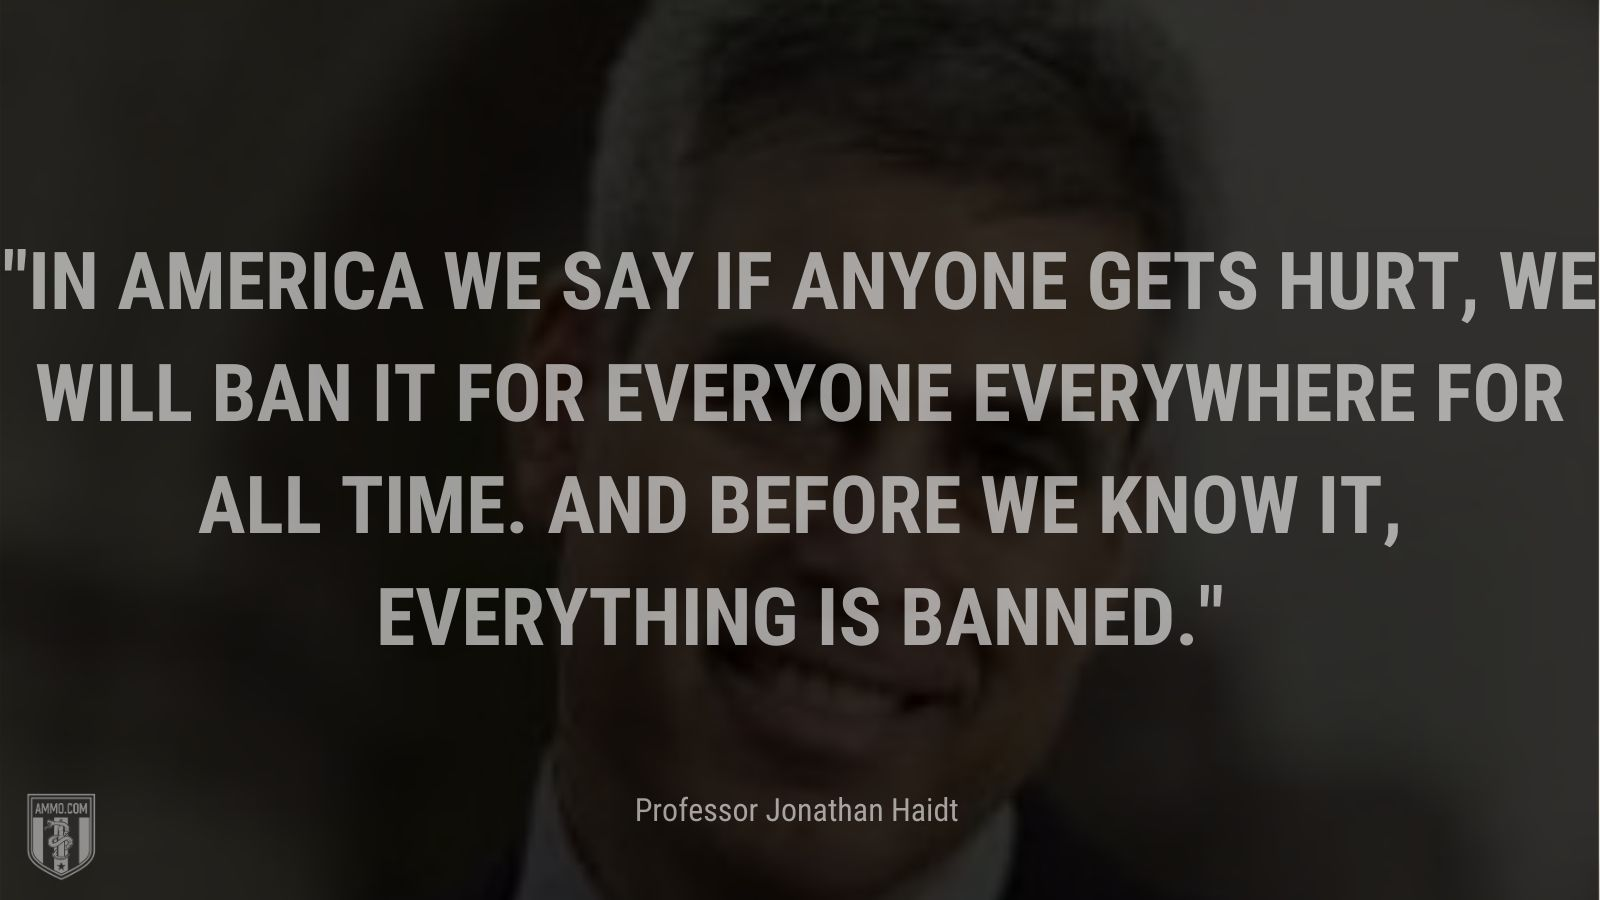 """""""In America we say if anyone gets hurt, we will ban it for everyone everywhere for all time. And before we know it, everything is banned. - Professor Jonathan Haidt"""